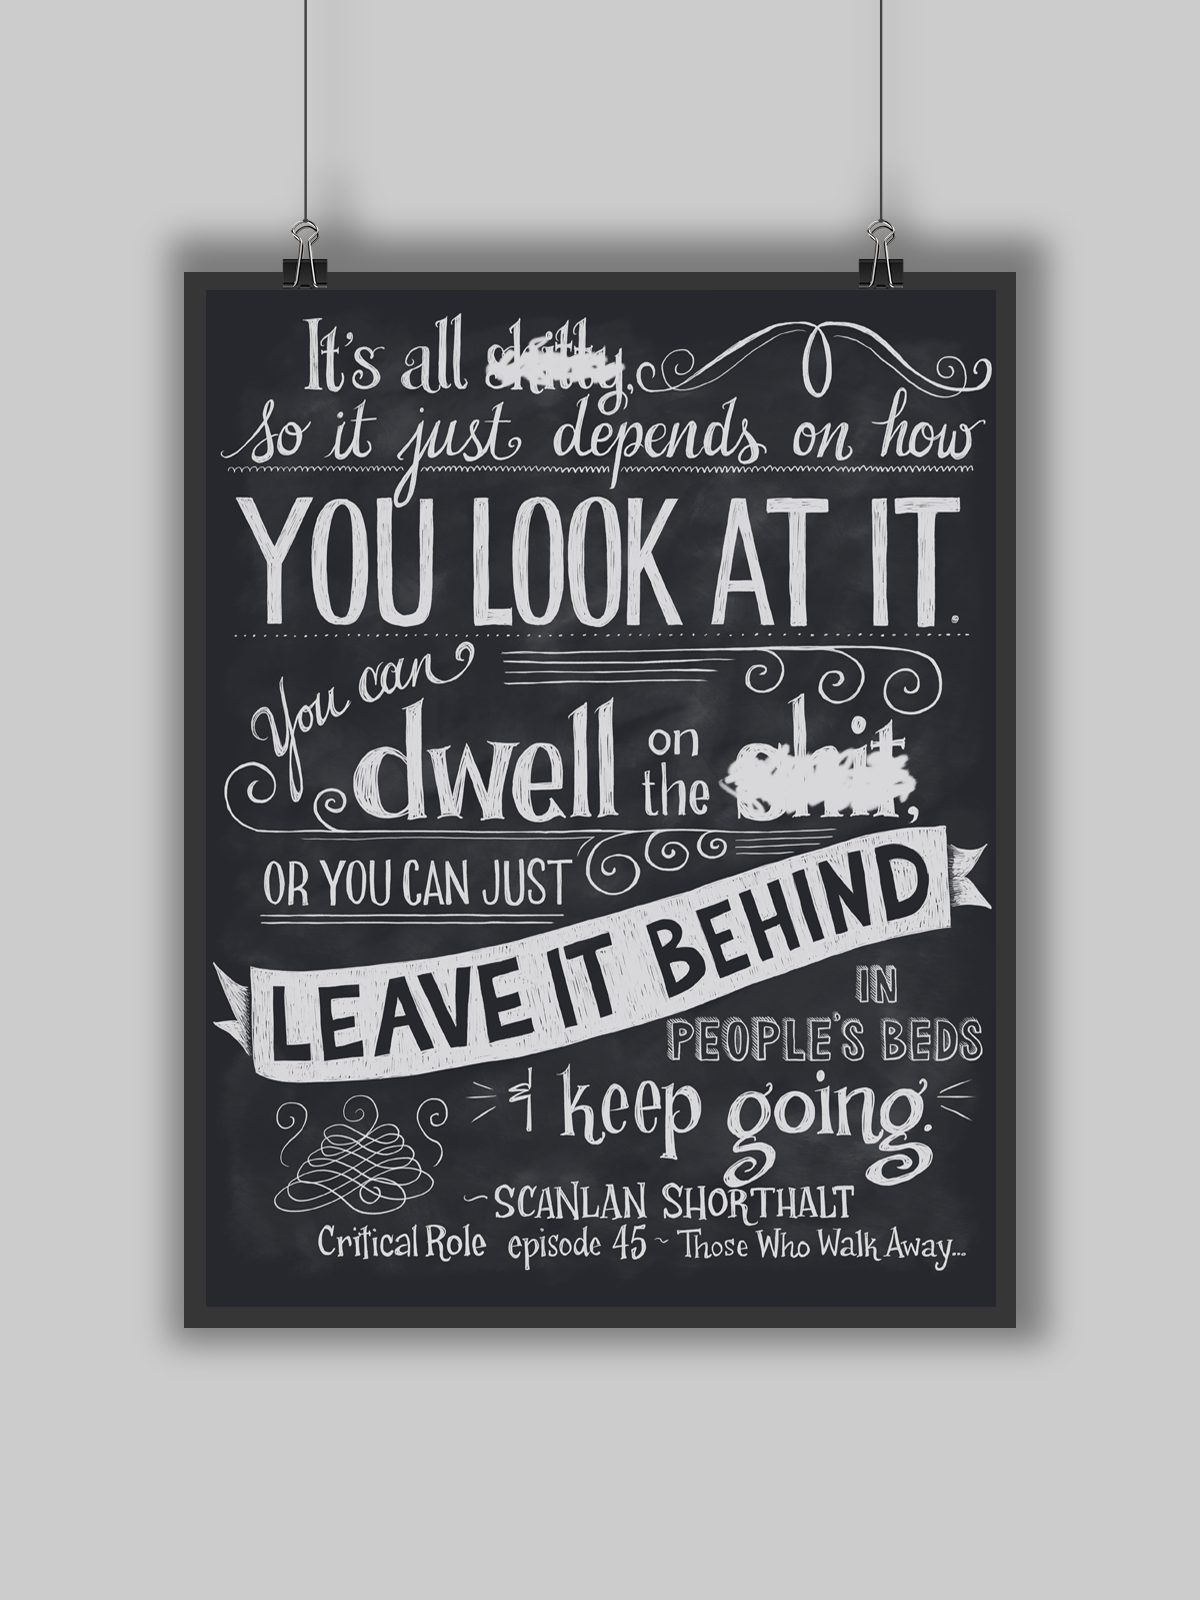 Critical Role - Leave It Behind - Print